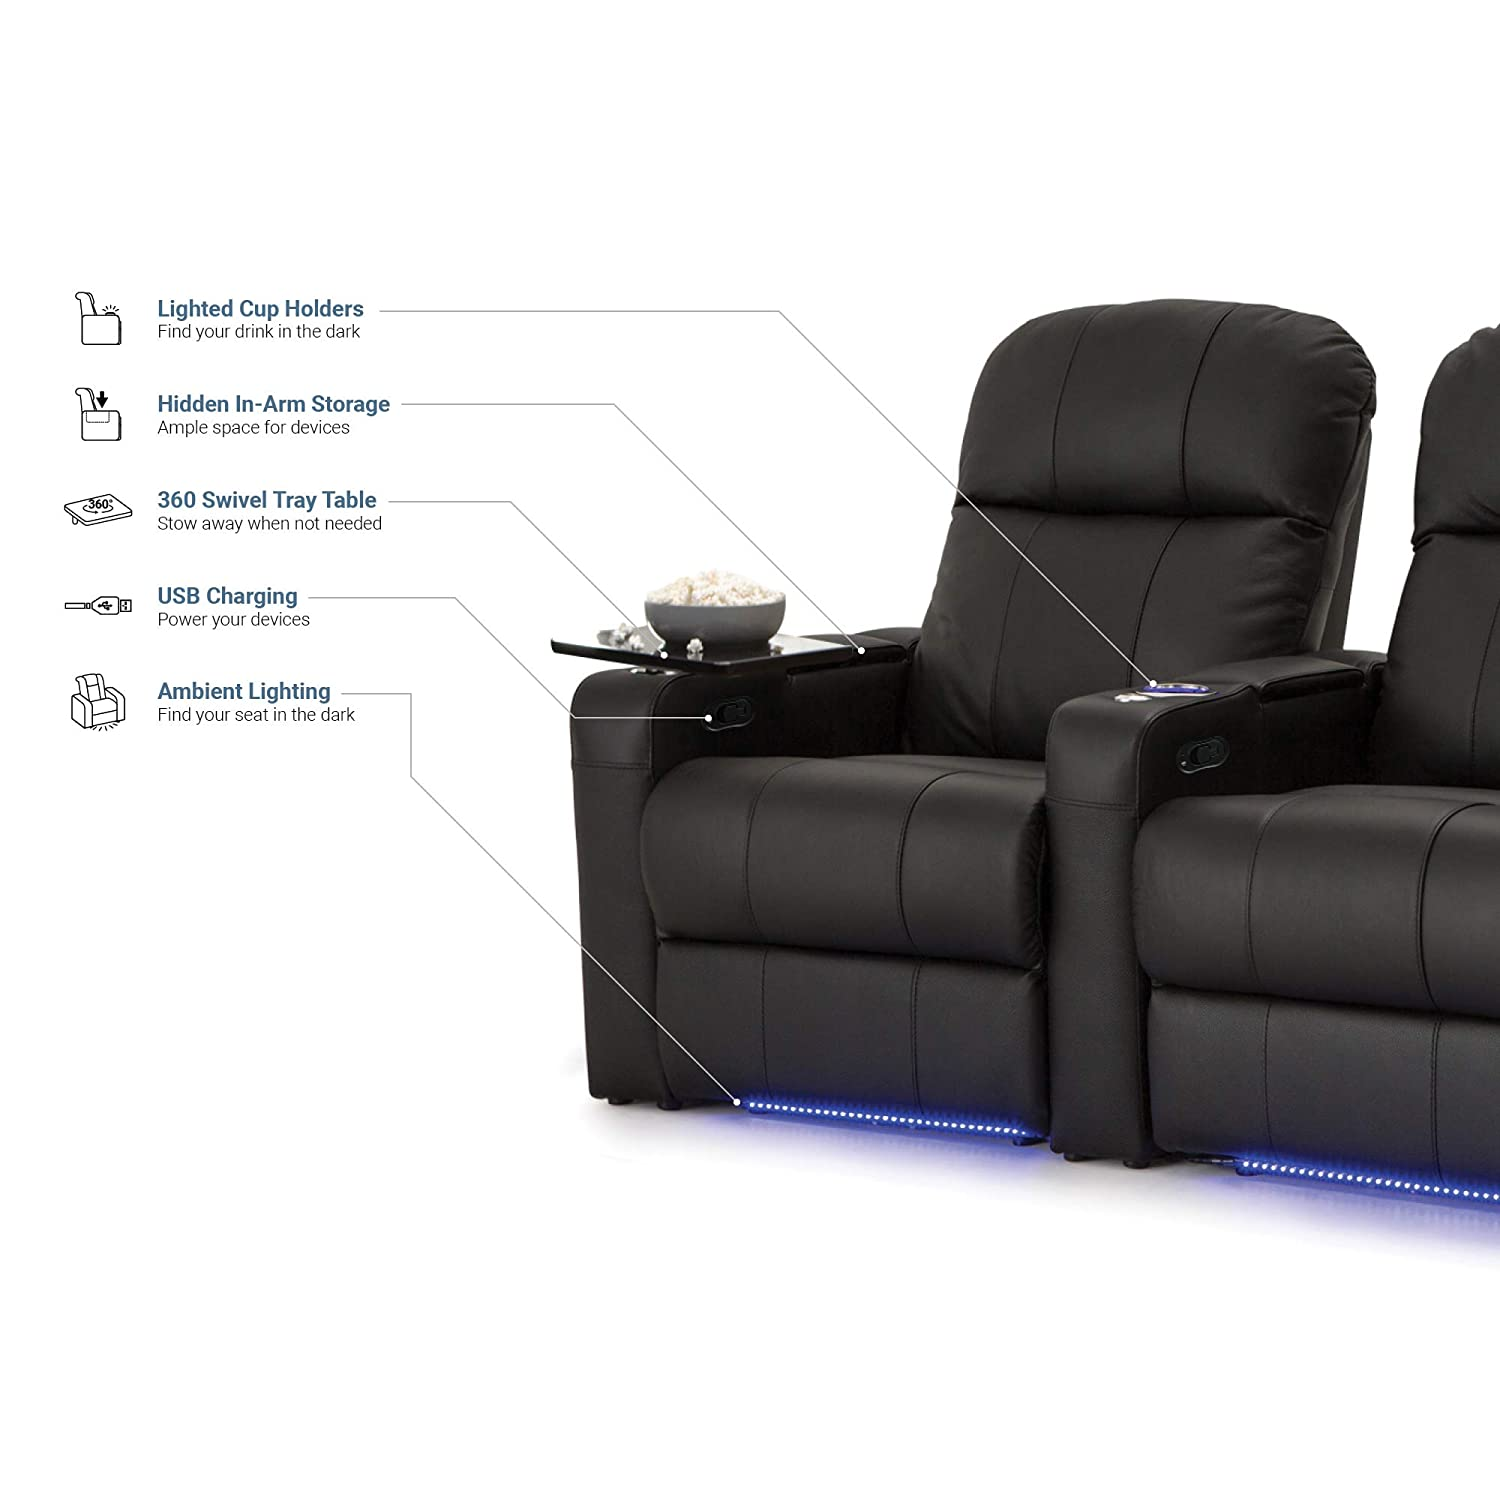 Seatcraft Venetian Home Theater Seating Manual Recline Bonded Leather with Hidden In-Arm Storage, Swivel Tray Tables, USB Charging, Lighted Cup Holders and Base, Row of 2, Black